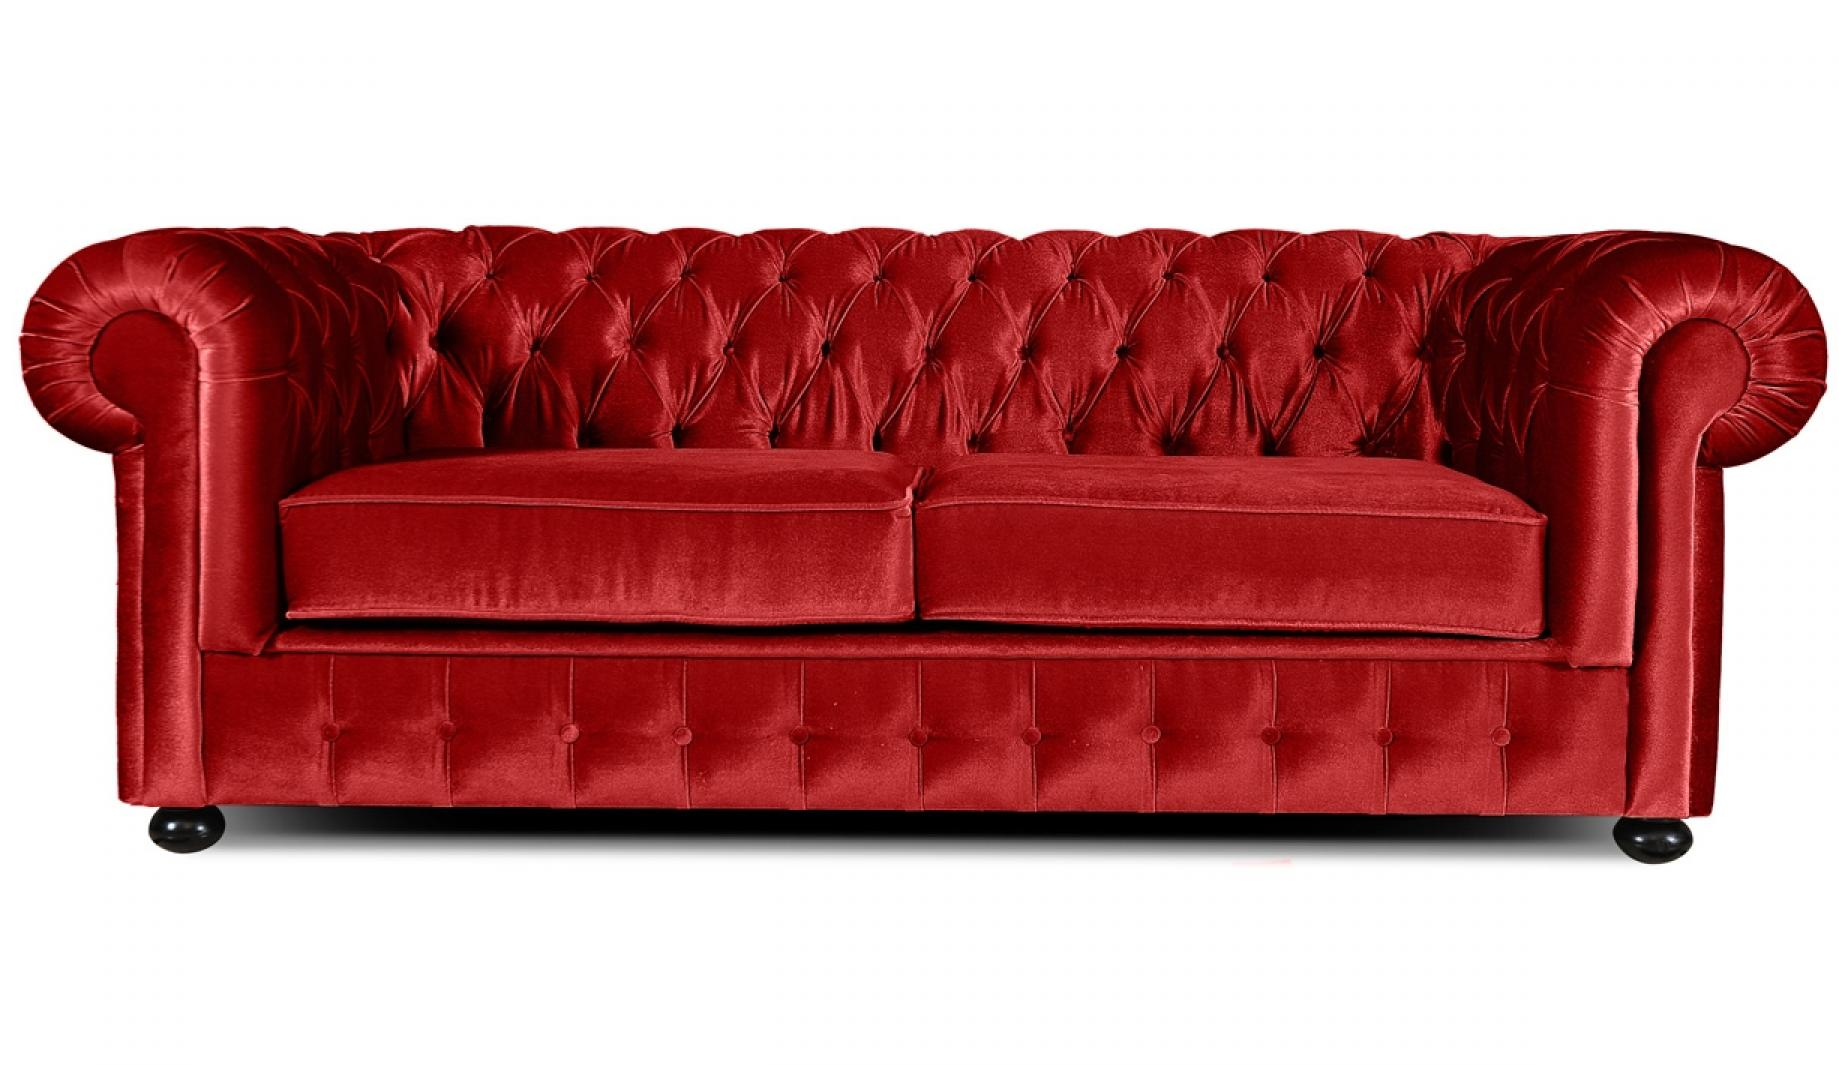 Canape chesterfield velours - Canape chesterfield rouge cuir ...